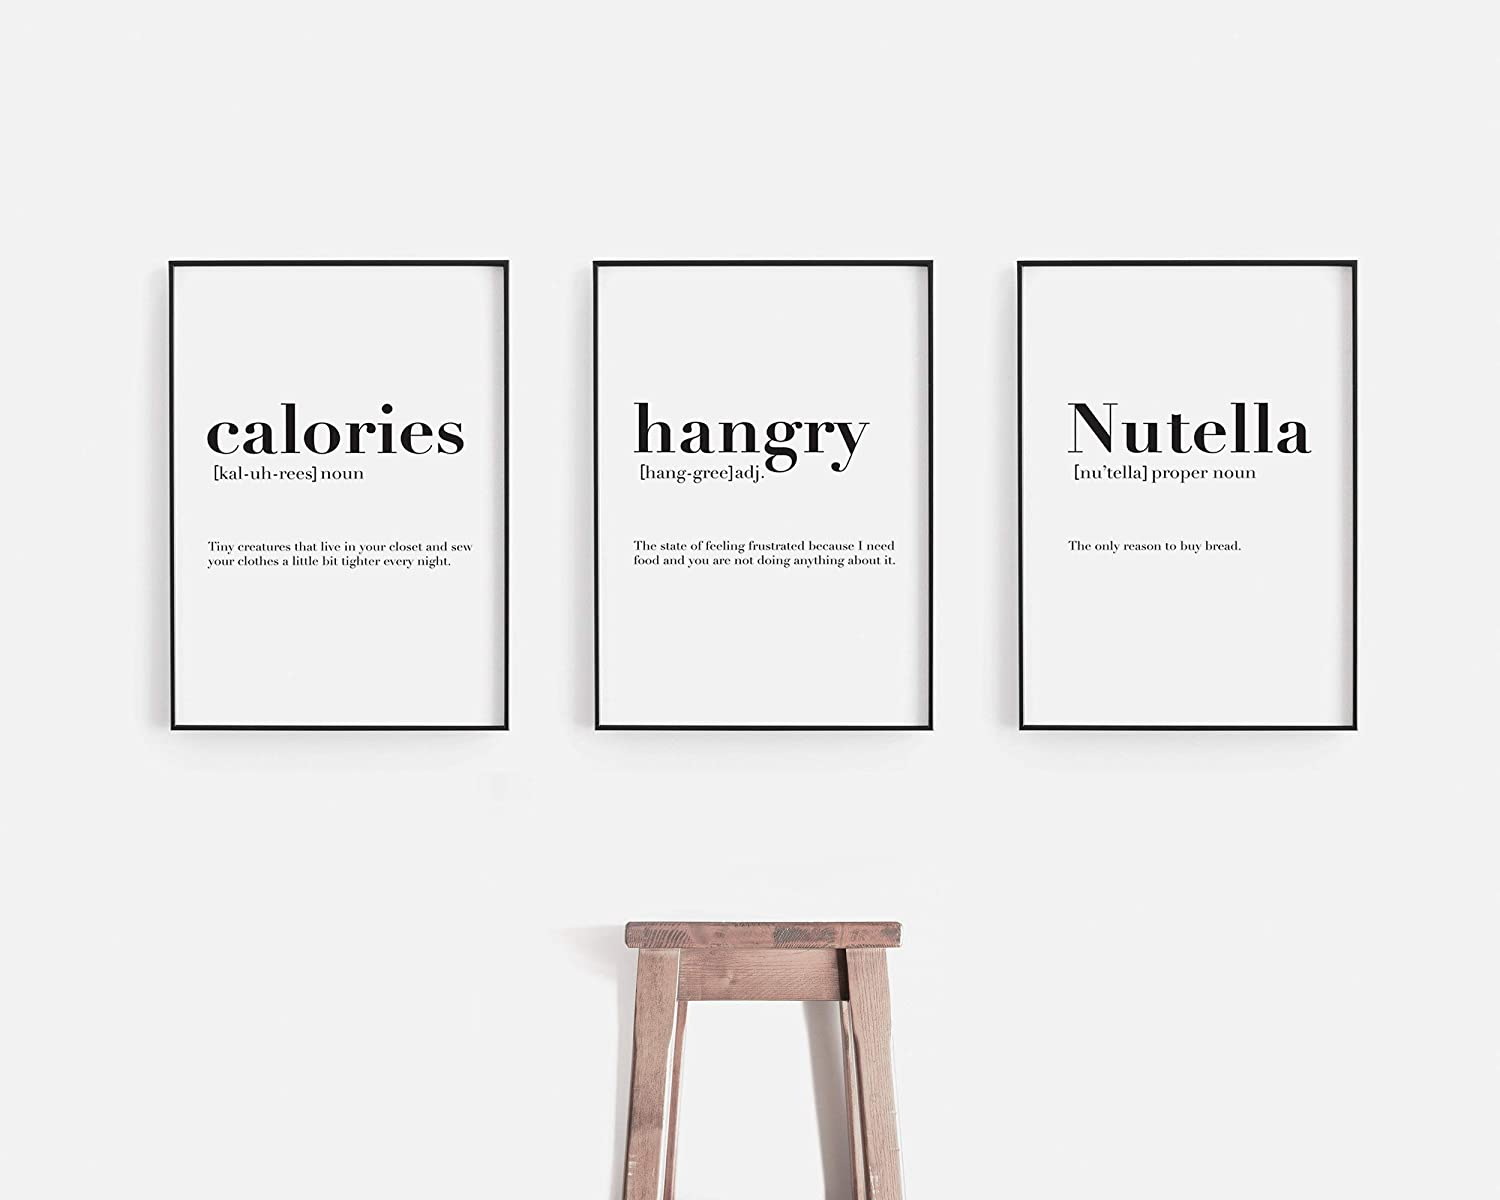 Flowershave357 Calories Hangry Chocolate Spread Definition Prints Funny Definition Wall Art Set of 3 Prints Kitchen Wall Art Decor Definition Print